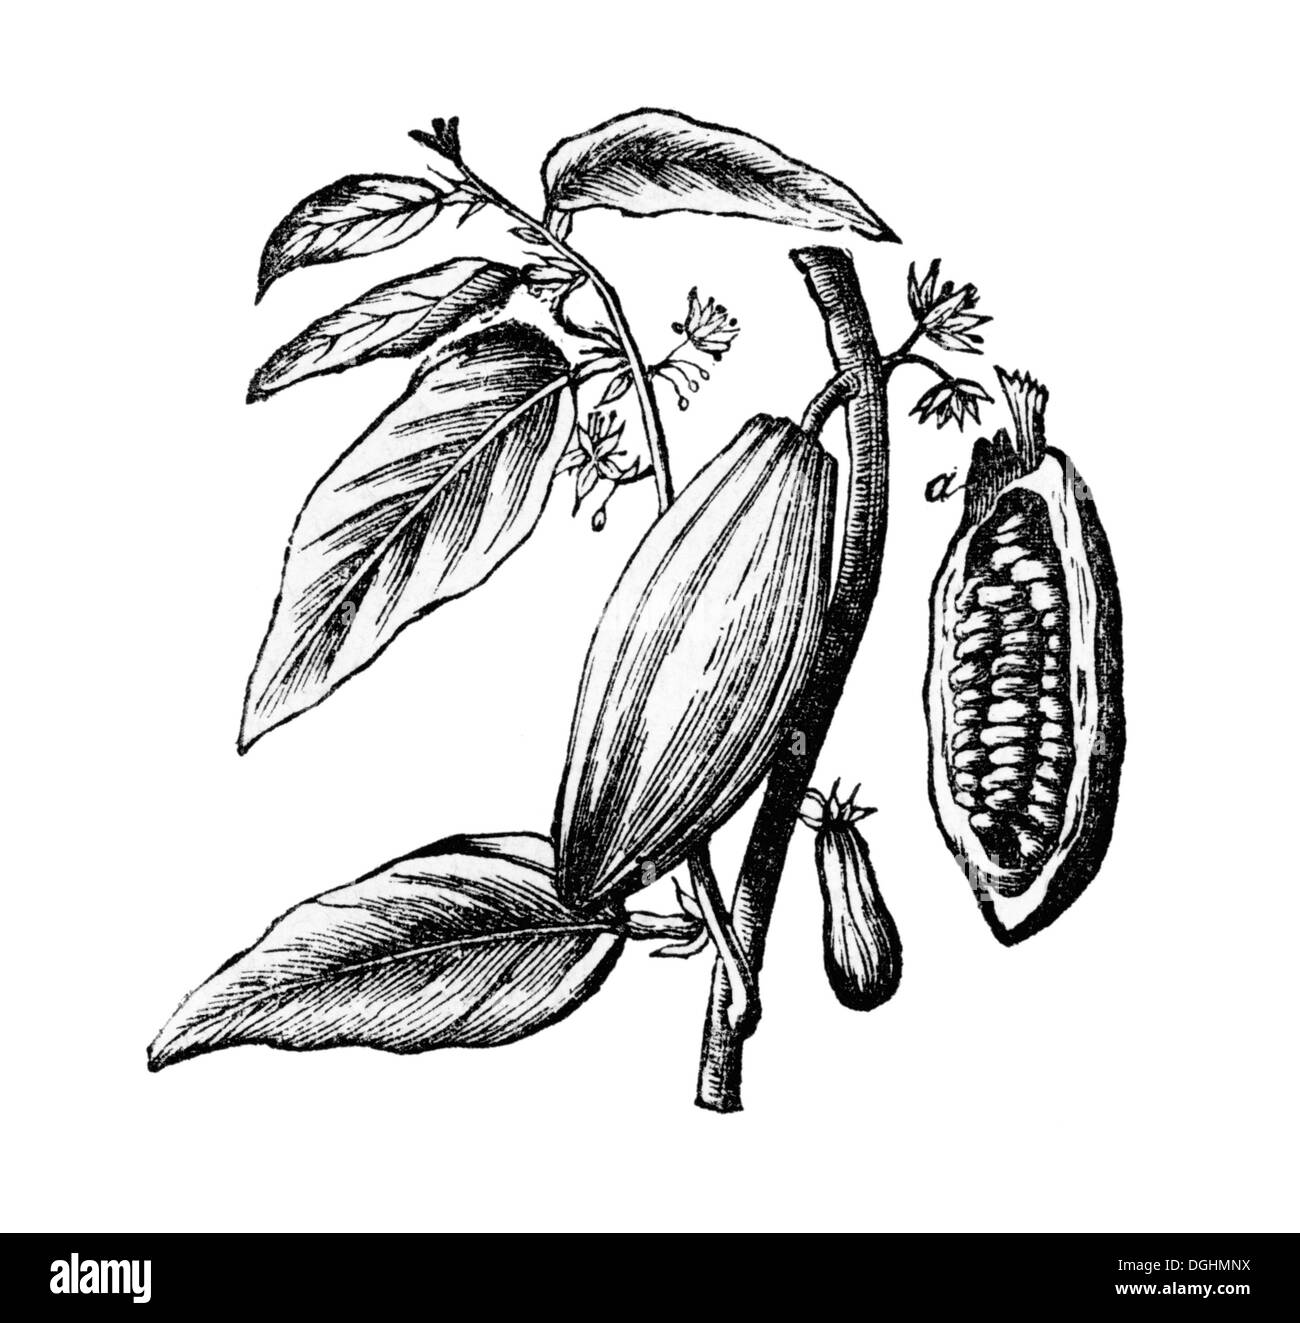 Cocoa Tree Illustration High Resolution Stock Photography And Images Alamy